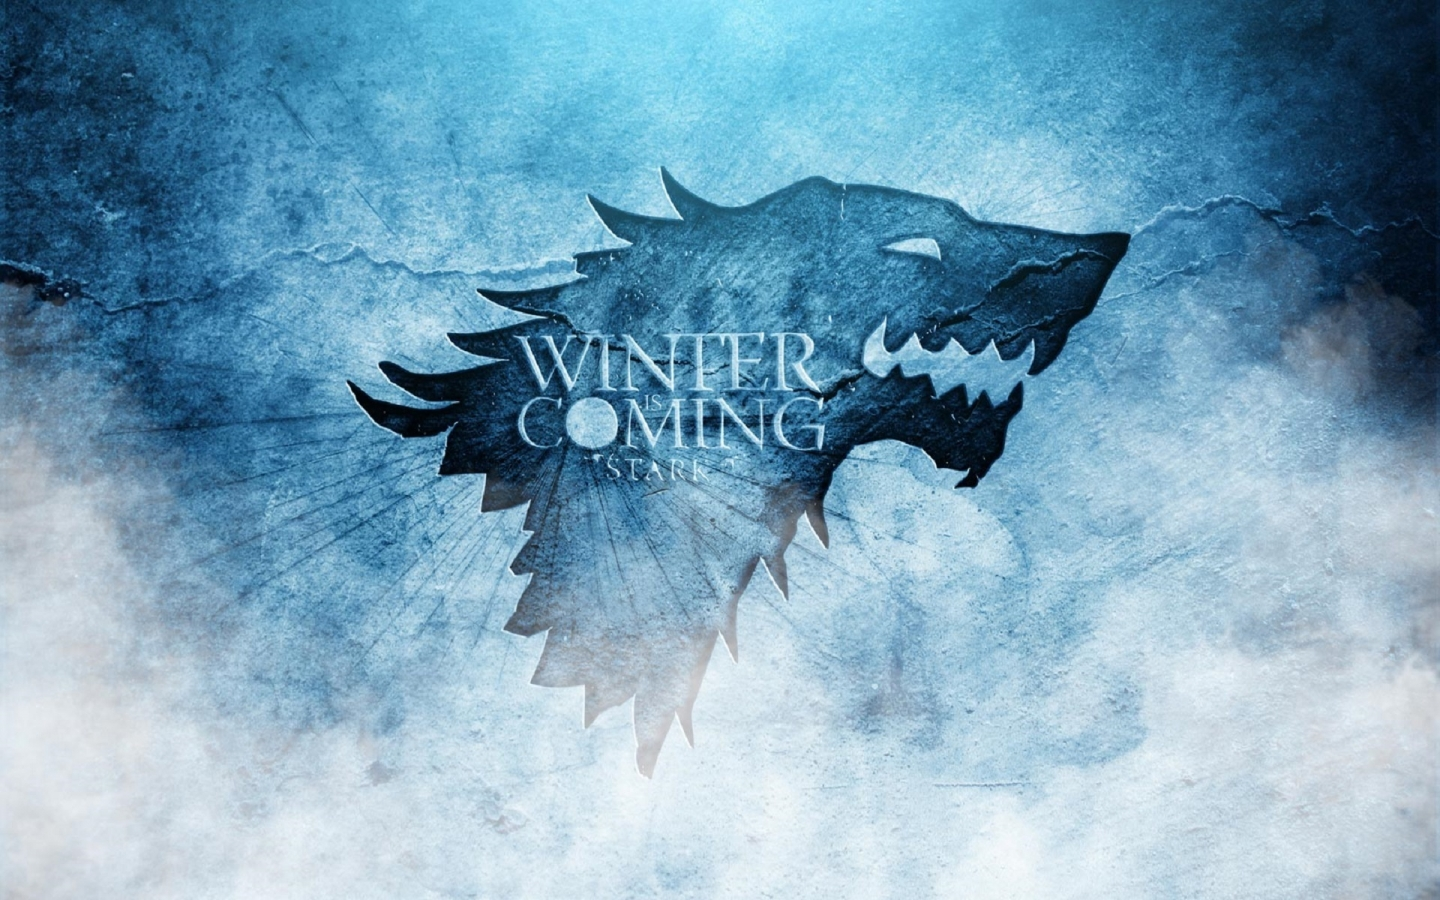 Game of Thrones the Song of Ice and Fire for 1440 x 900 widescreen resolution